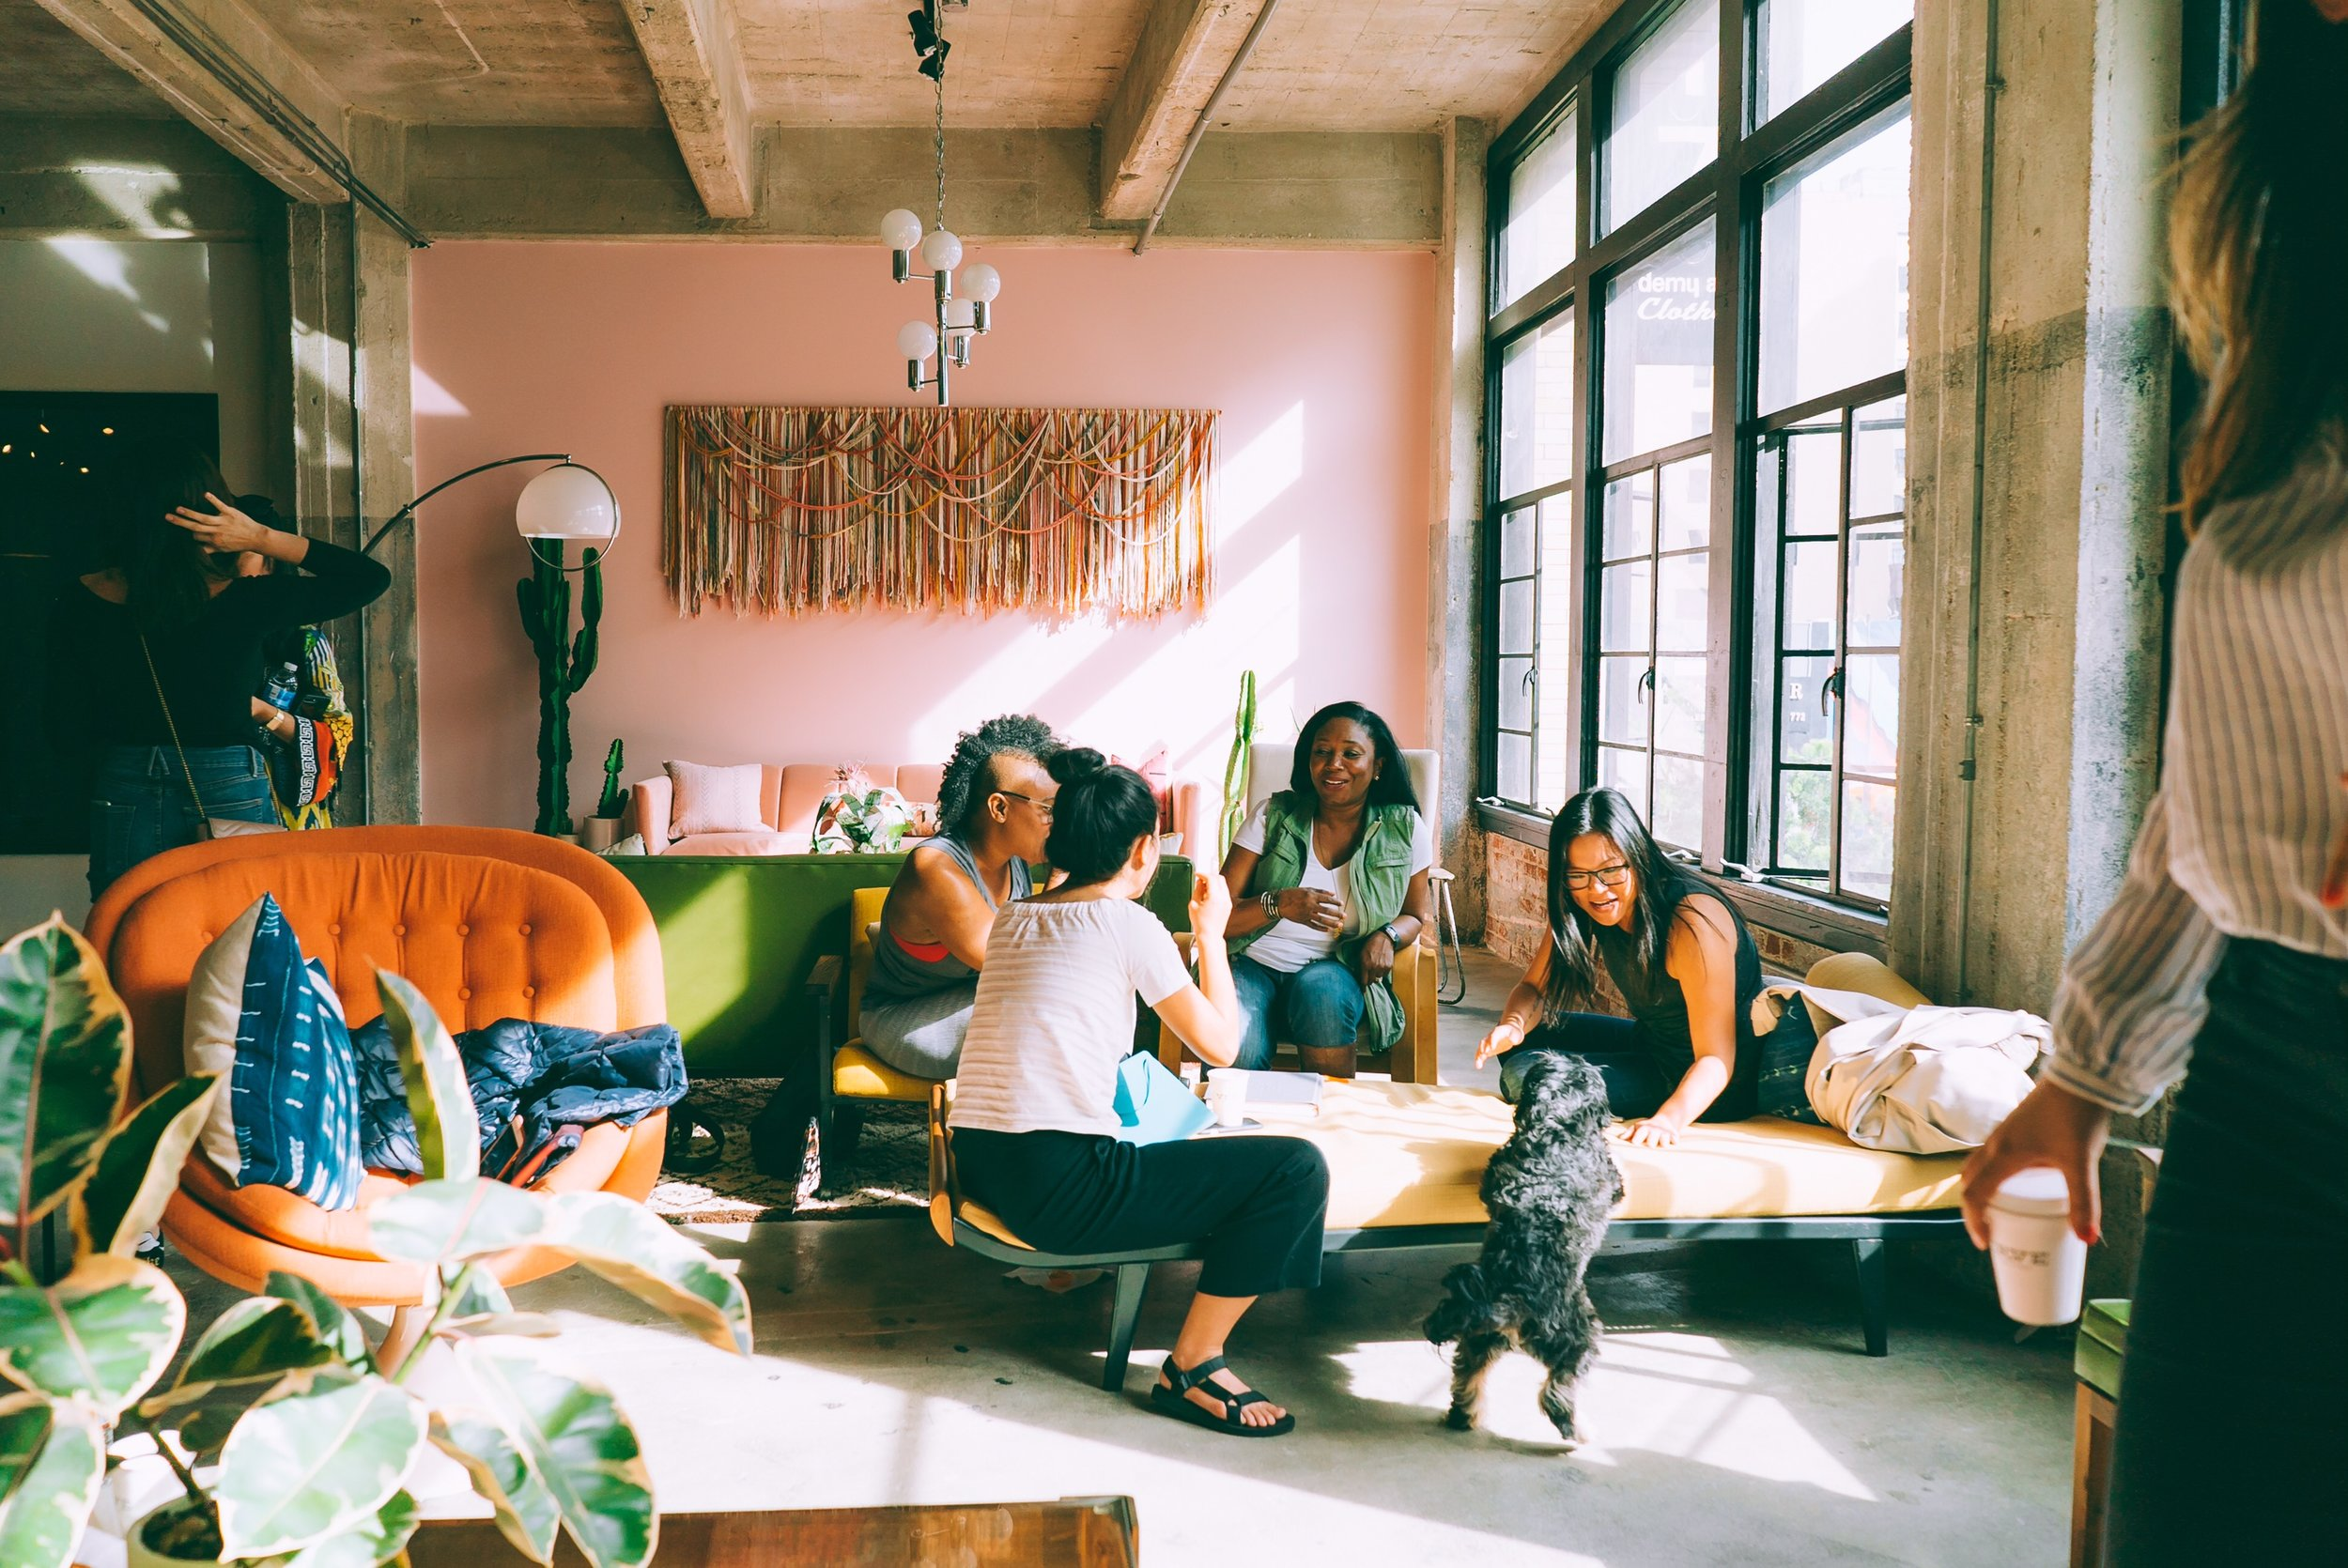 Welcome To the Matriarchy! - Biz Babez is on a mission to create a physical space and a community of biz babez created by women for women. We don't just take women seriously, we think female first and female forward. That's why in addition to our co-work space, we've launched Bizzy.